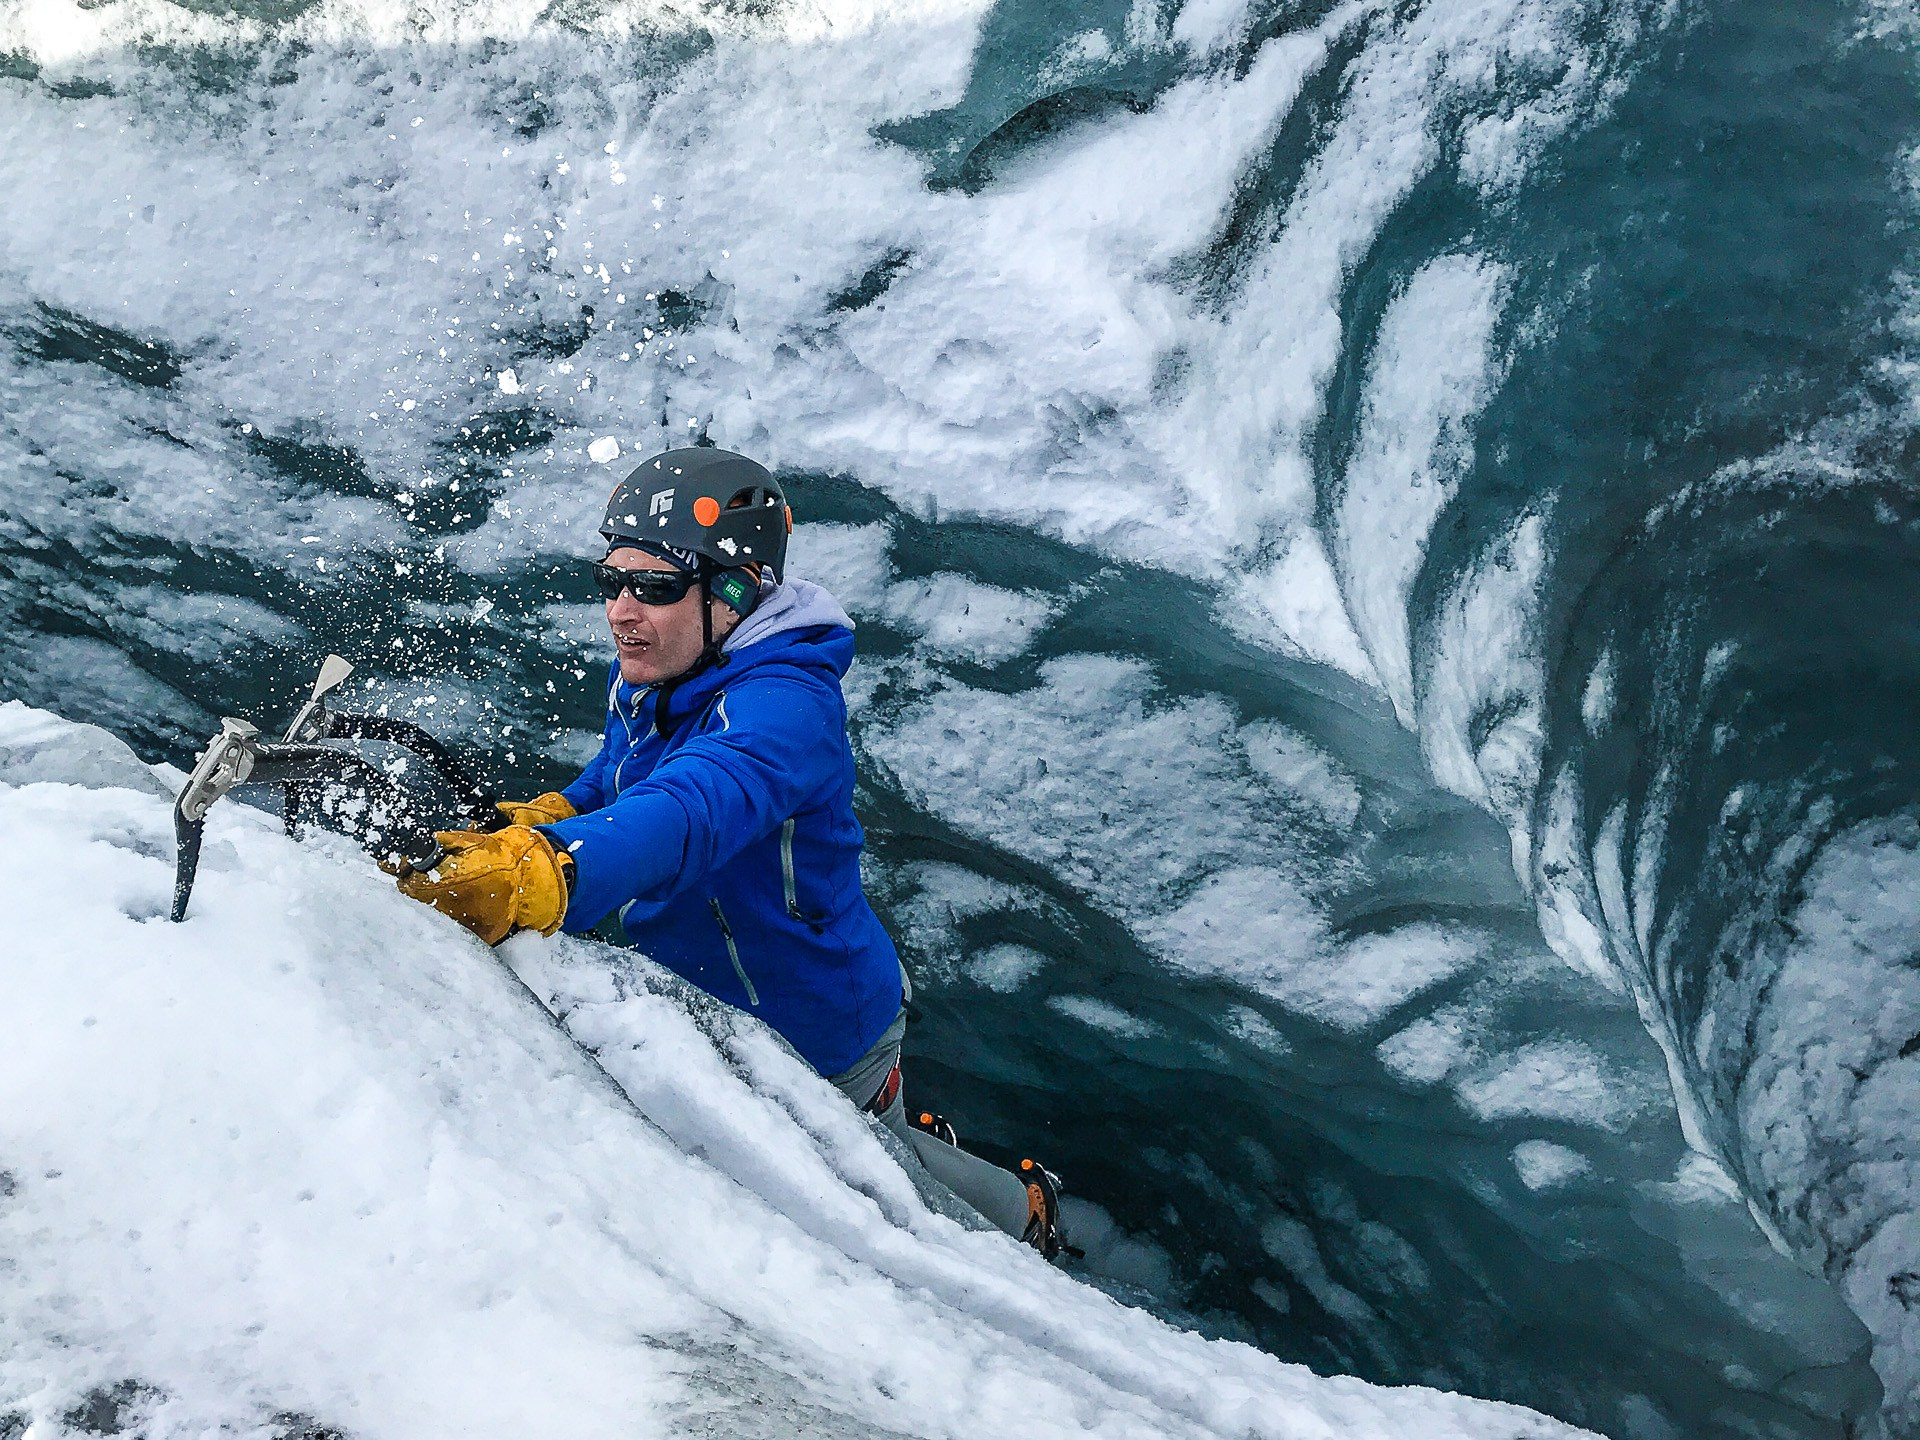 Solheimajokull Ice Climbing & Glacier Hike | Guide to Iceland